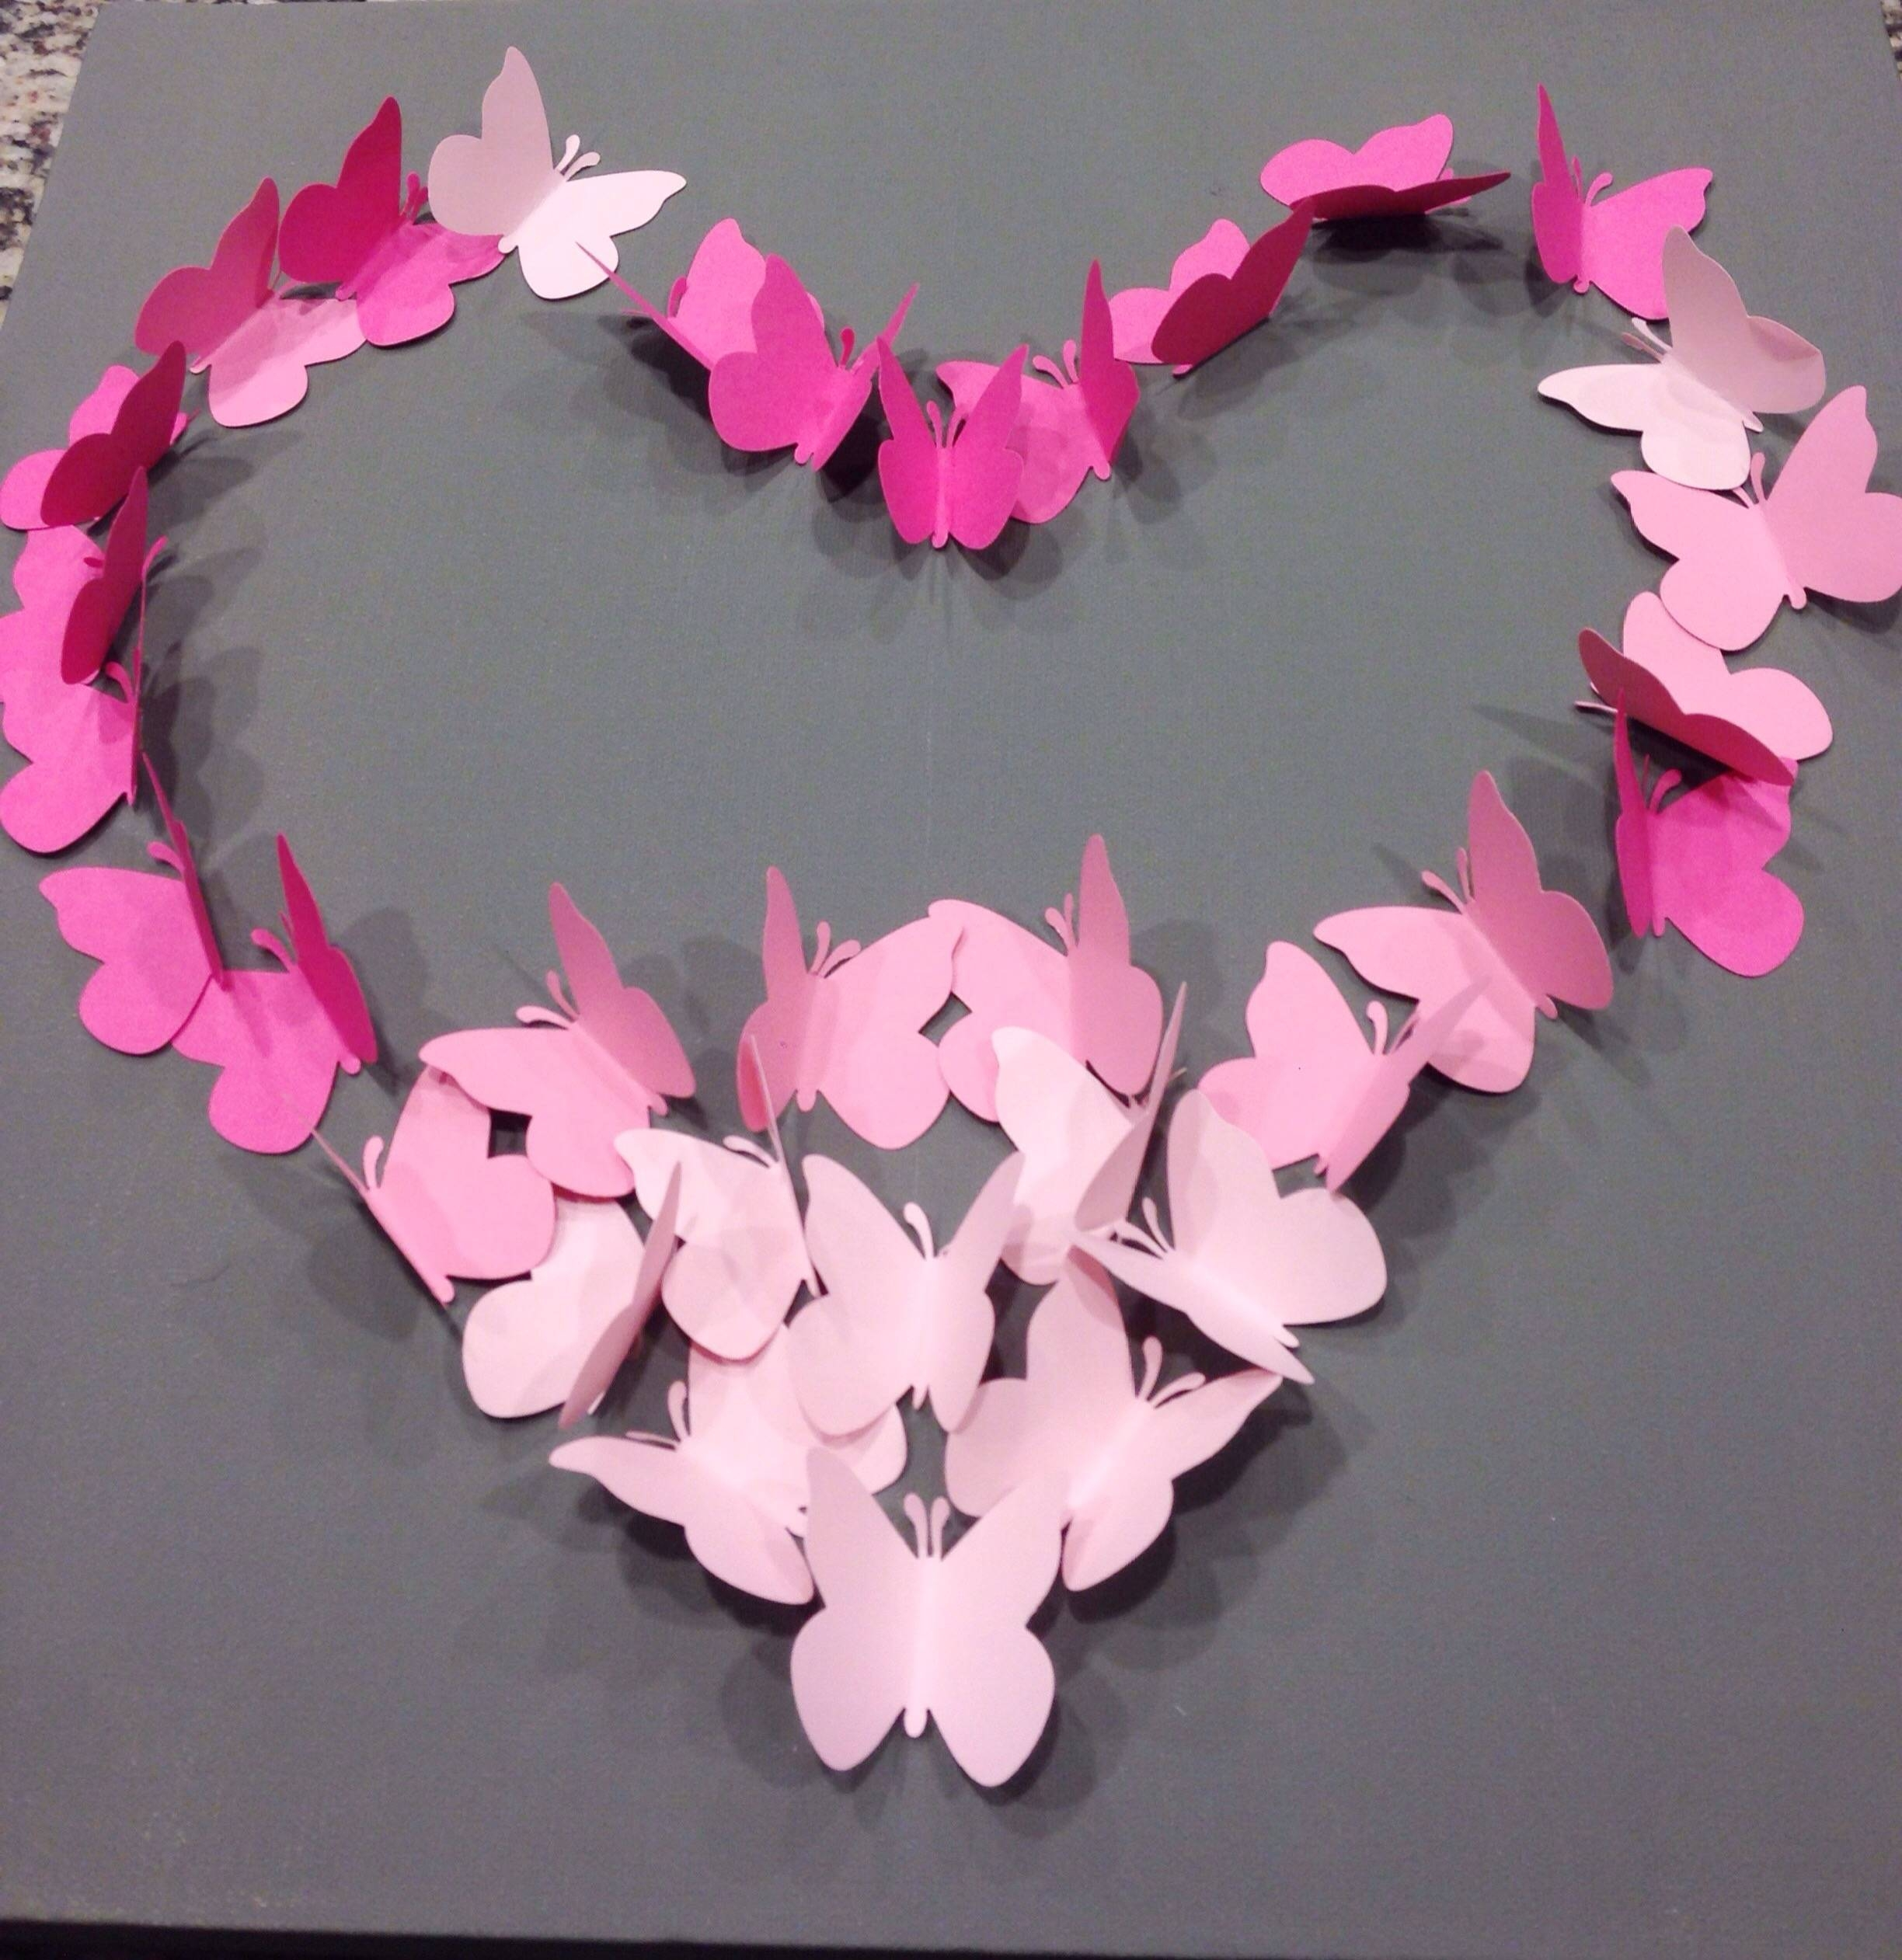 Diy Ombre Butterfly Wall Art Within Most Current Pink Butterfly Wall Art (View 17 of 20)